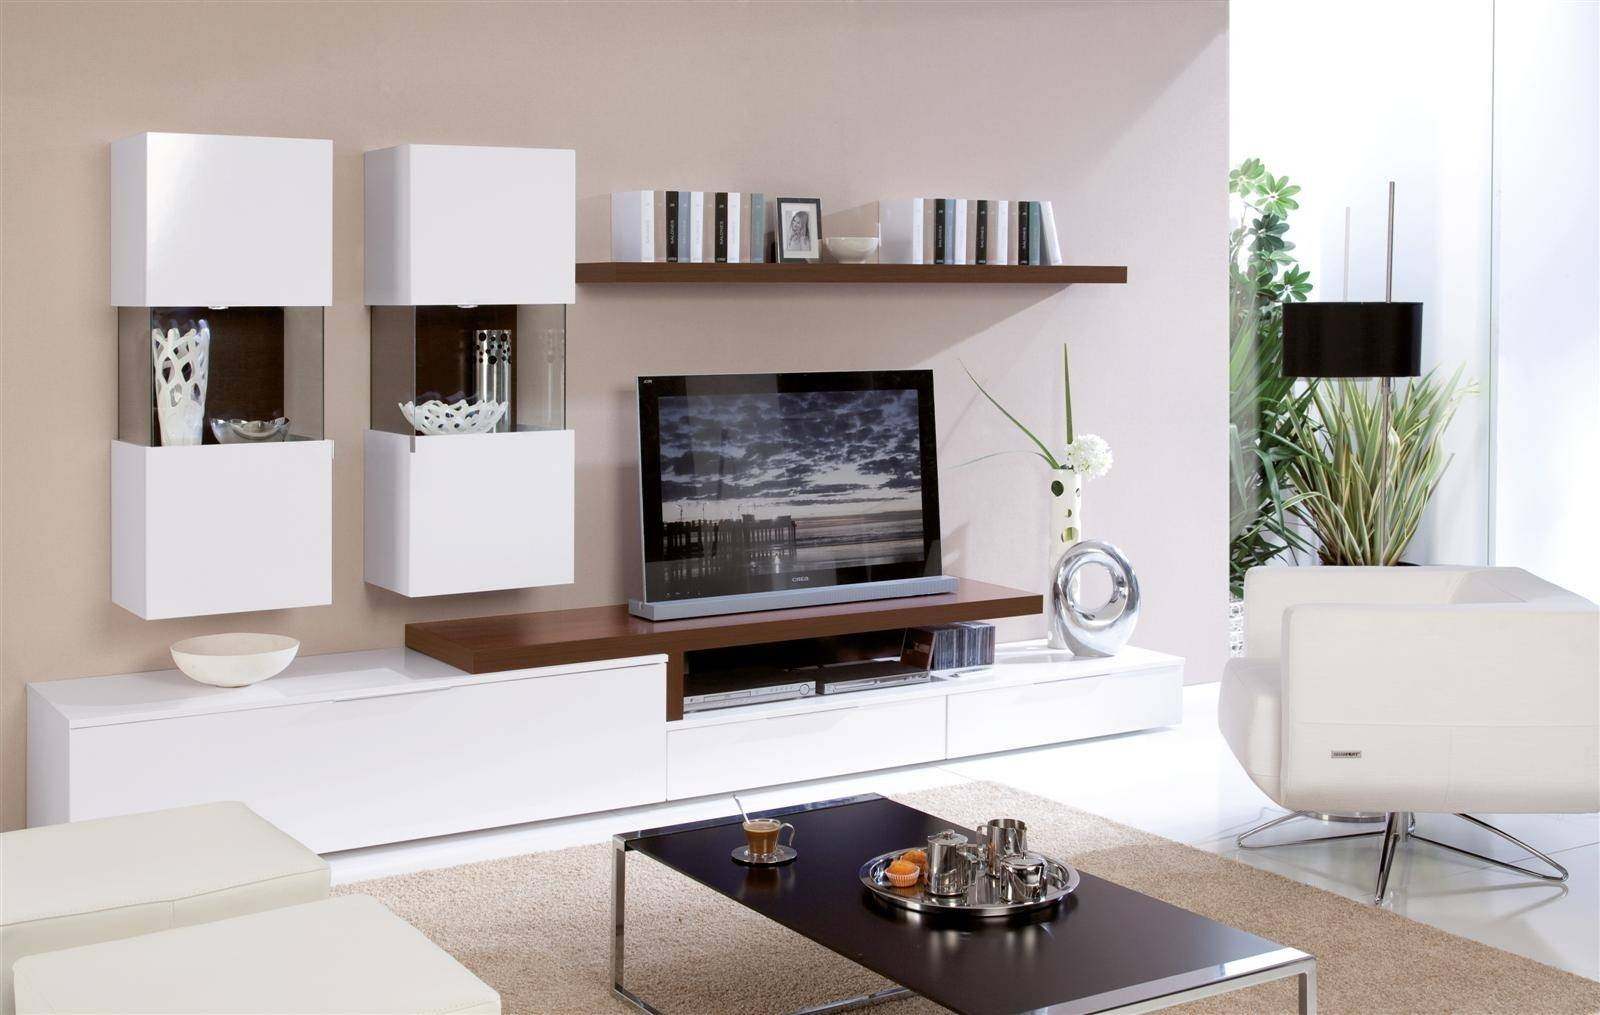 Bedroom : Beautiful Cool Tv Wall Unit Design Splendid Gorgeous With Regard To Contemporary Tv Wall Units (View 14 of 15)